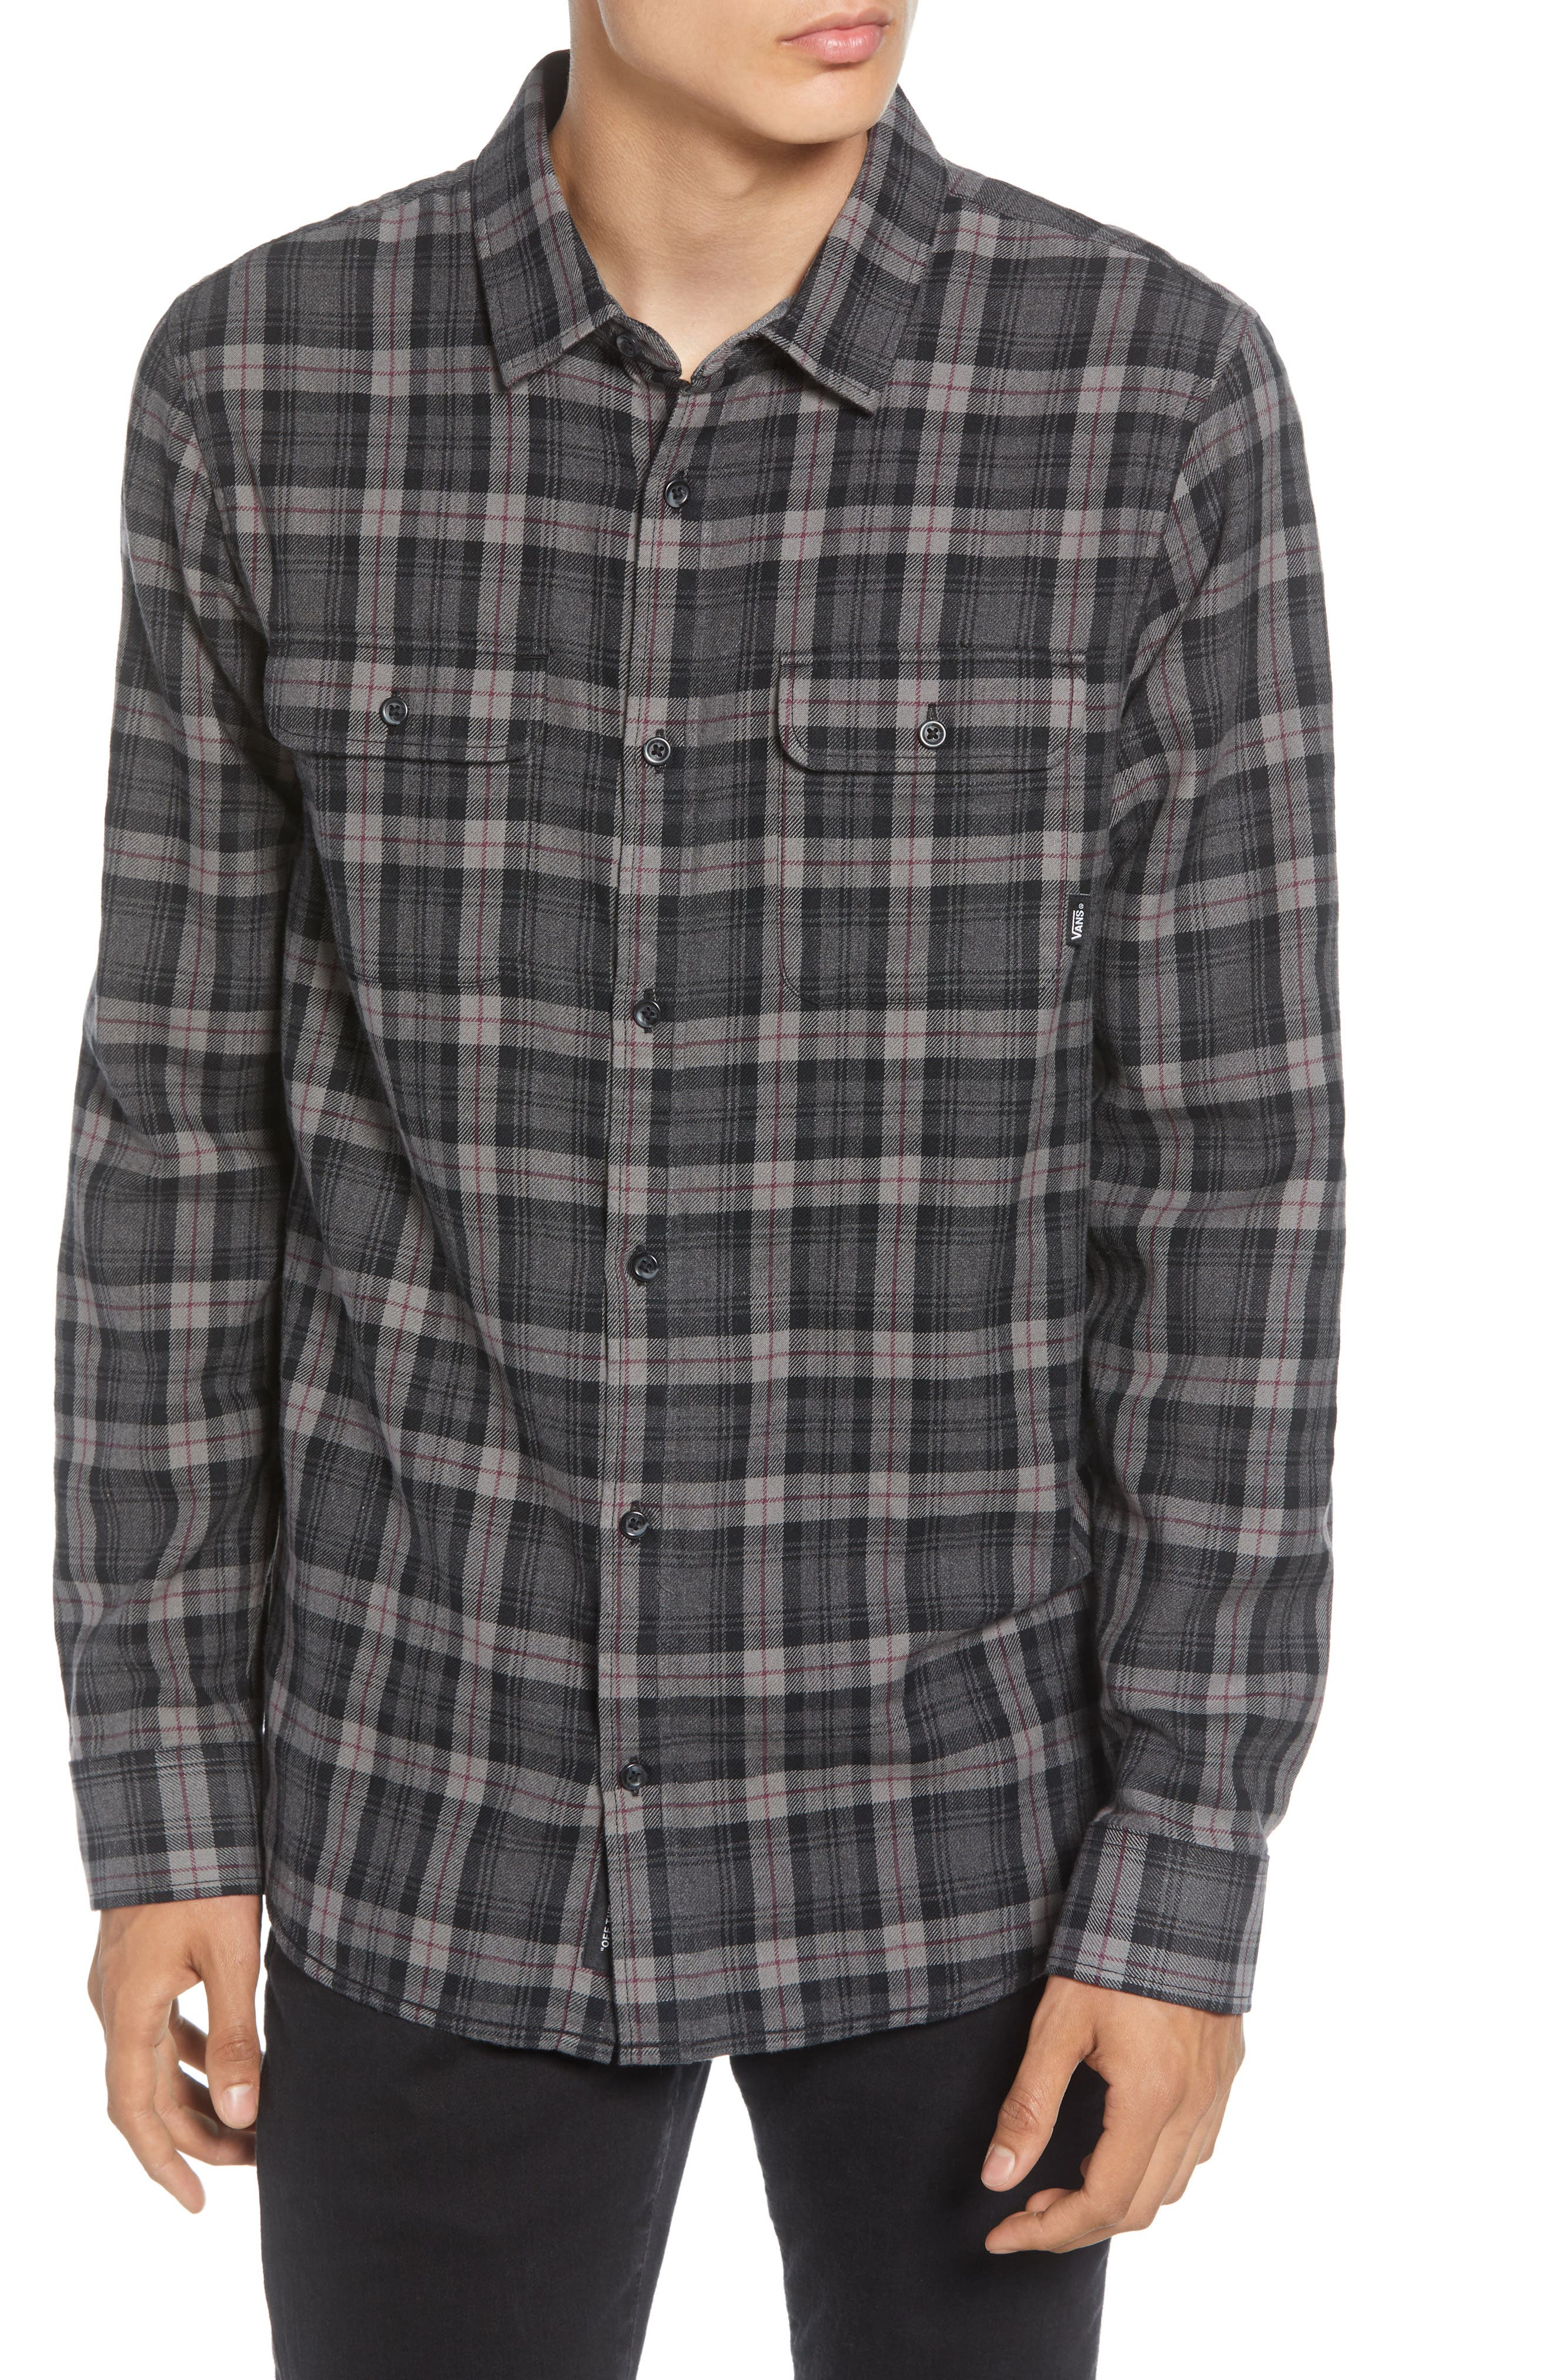 Vans T-shirts Sycamore Classic Fit Plaid Button-Up Flannel Shirt